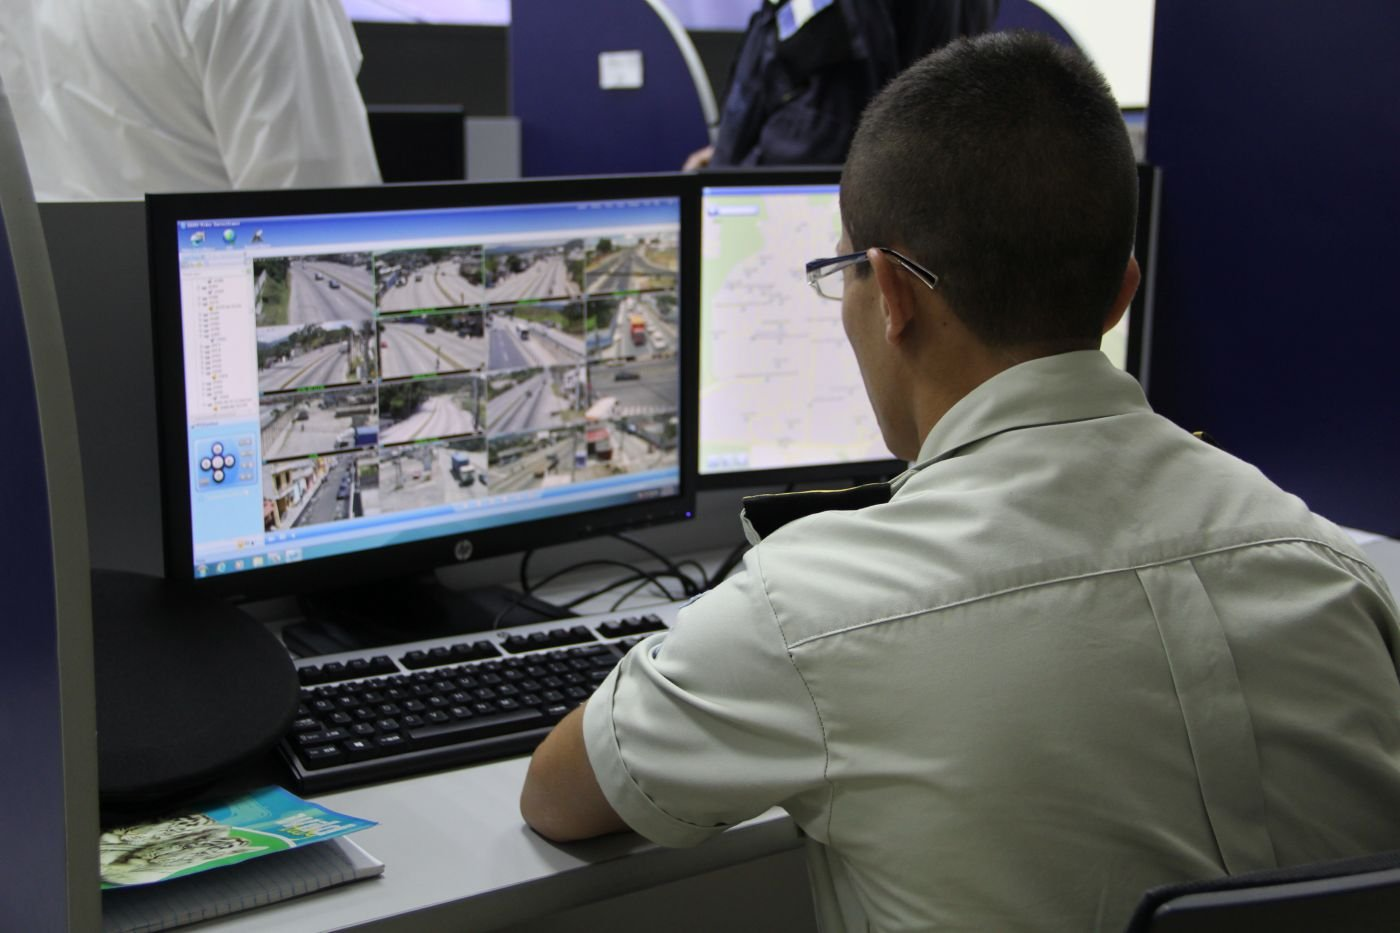 Surveillance cameras help police reduce crime in Guatemala City